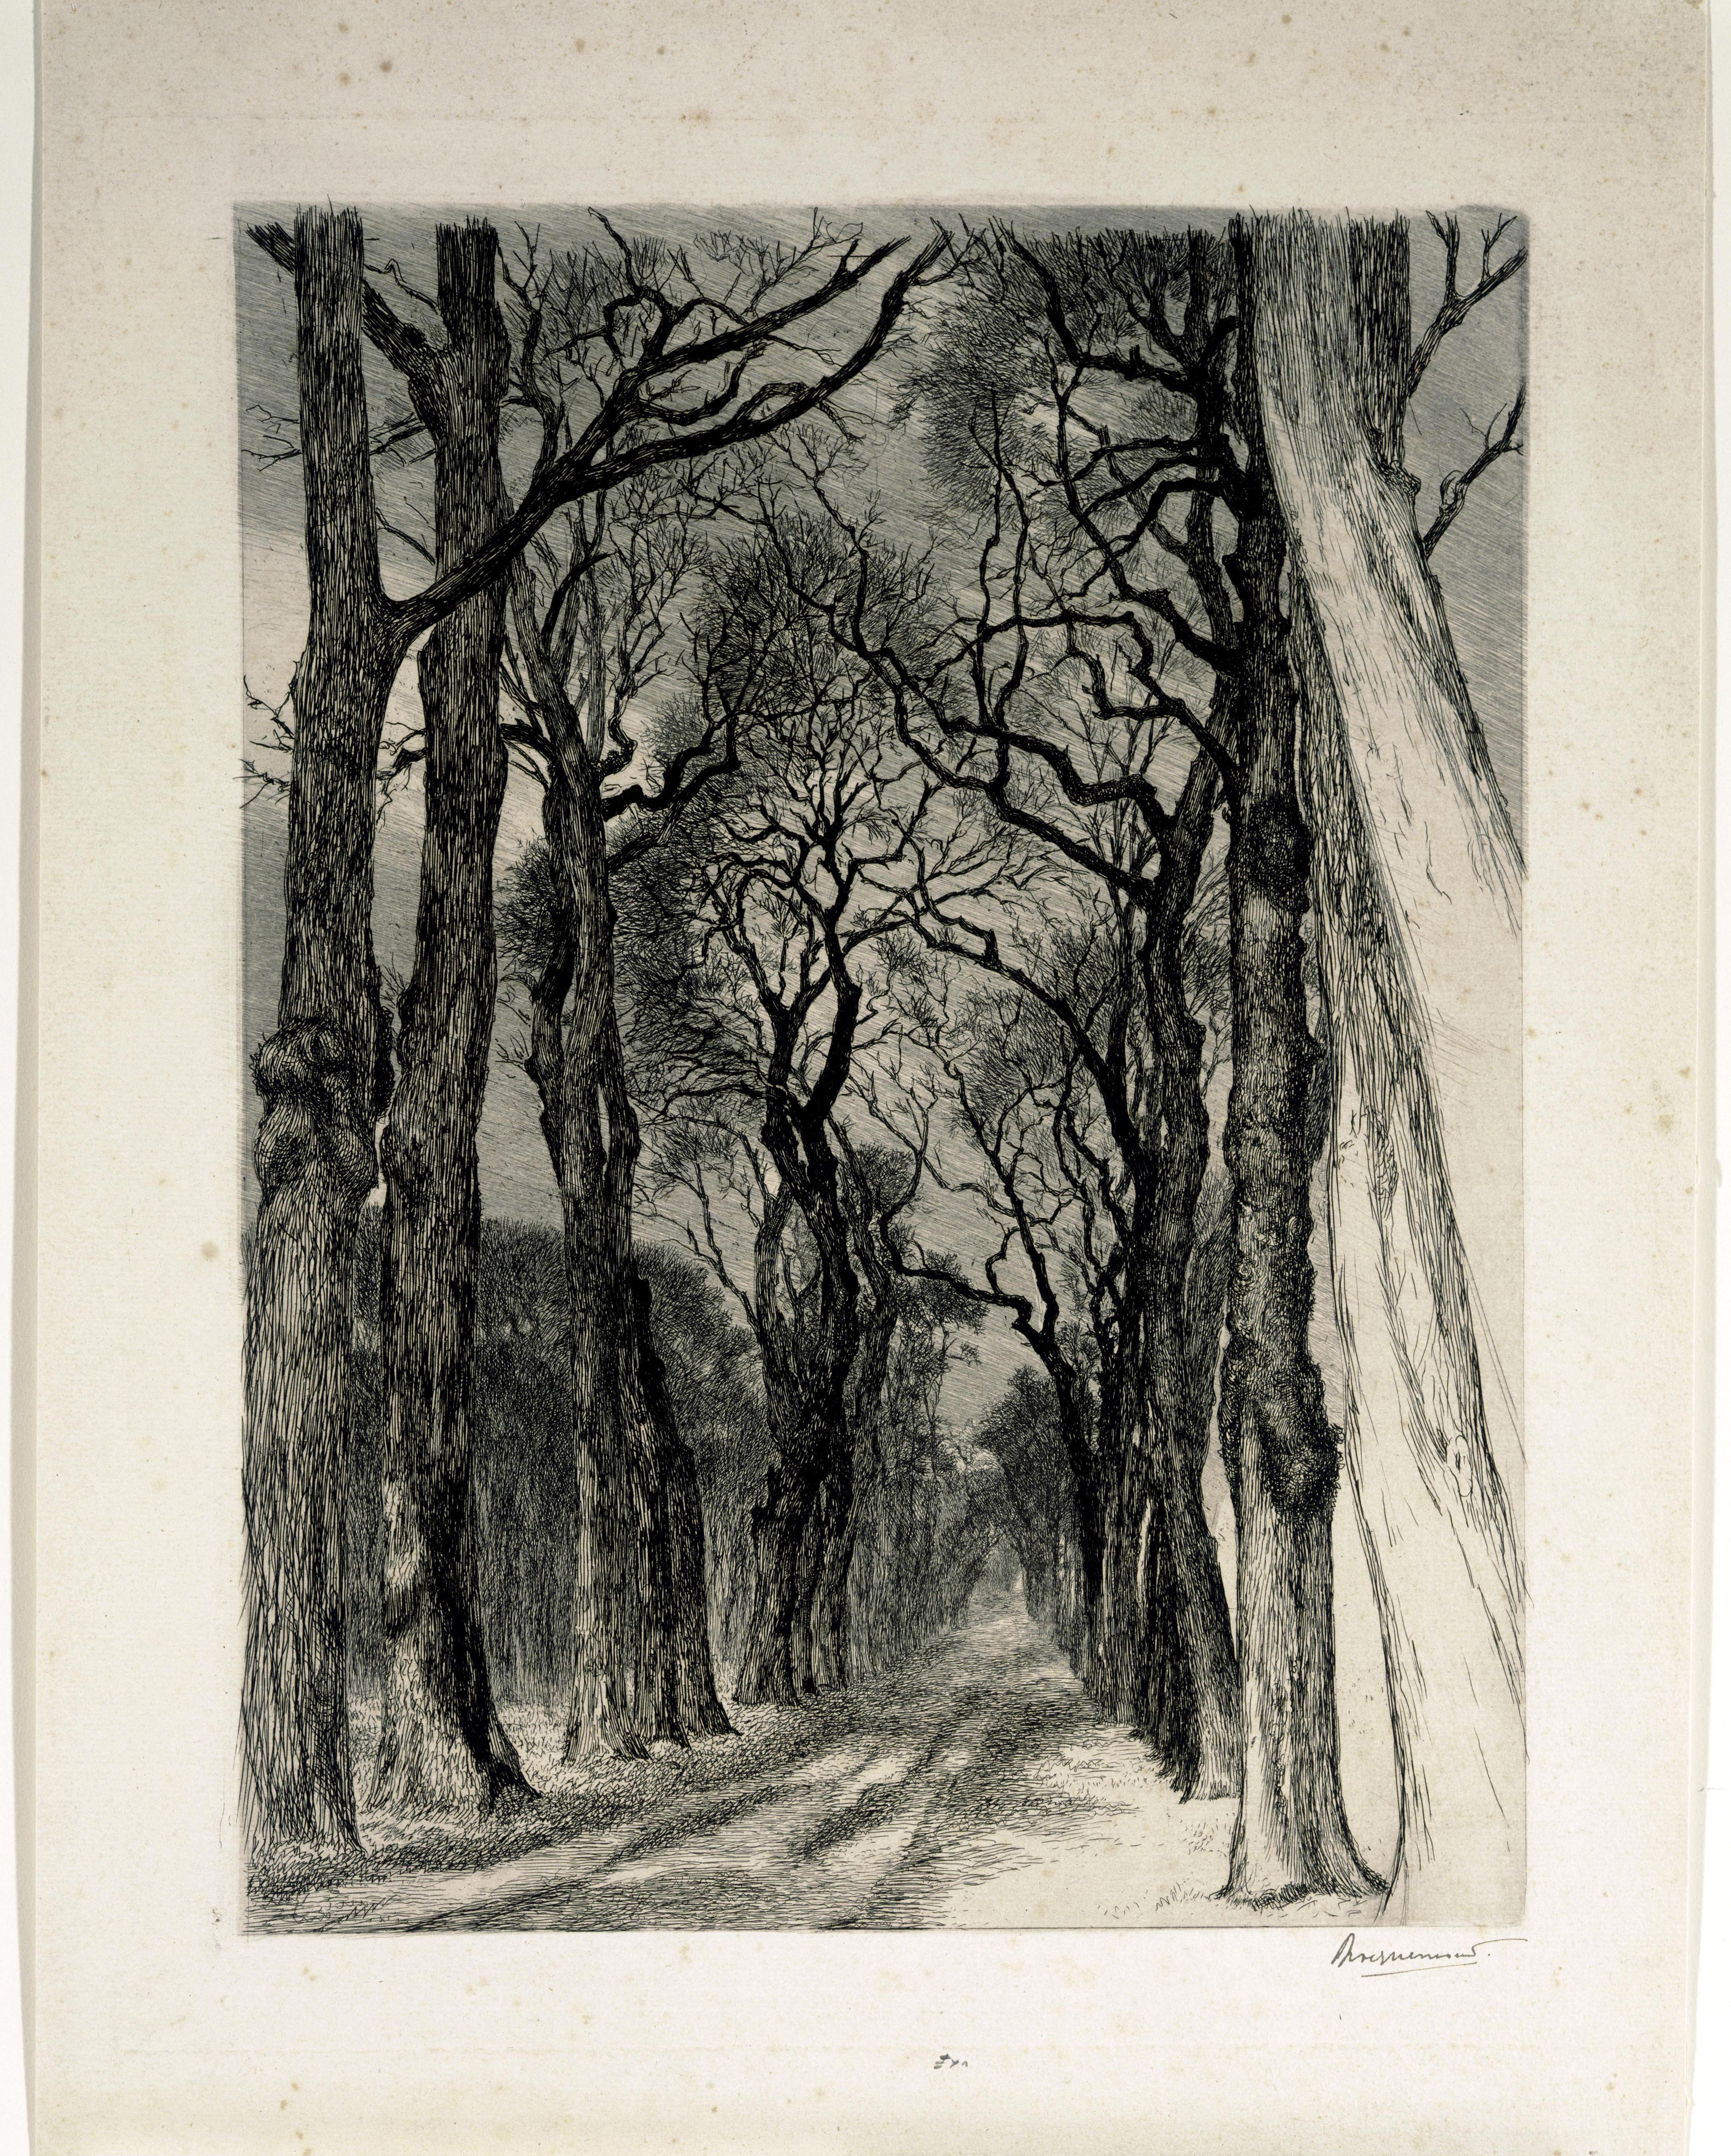 Félix Bracquemond, A Path in the Park of Saint-Cloud in Winter, 1894